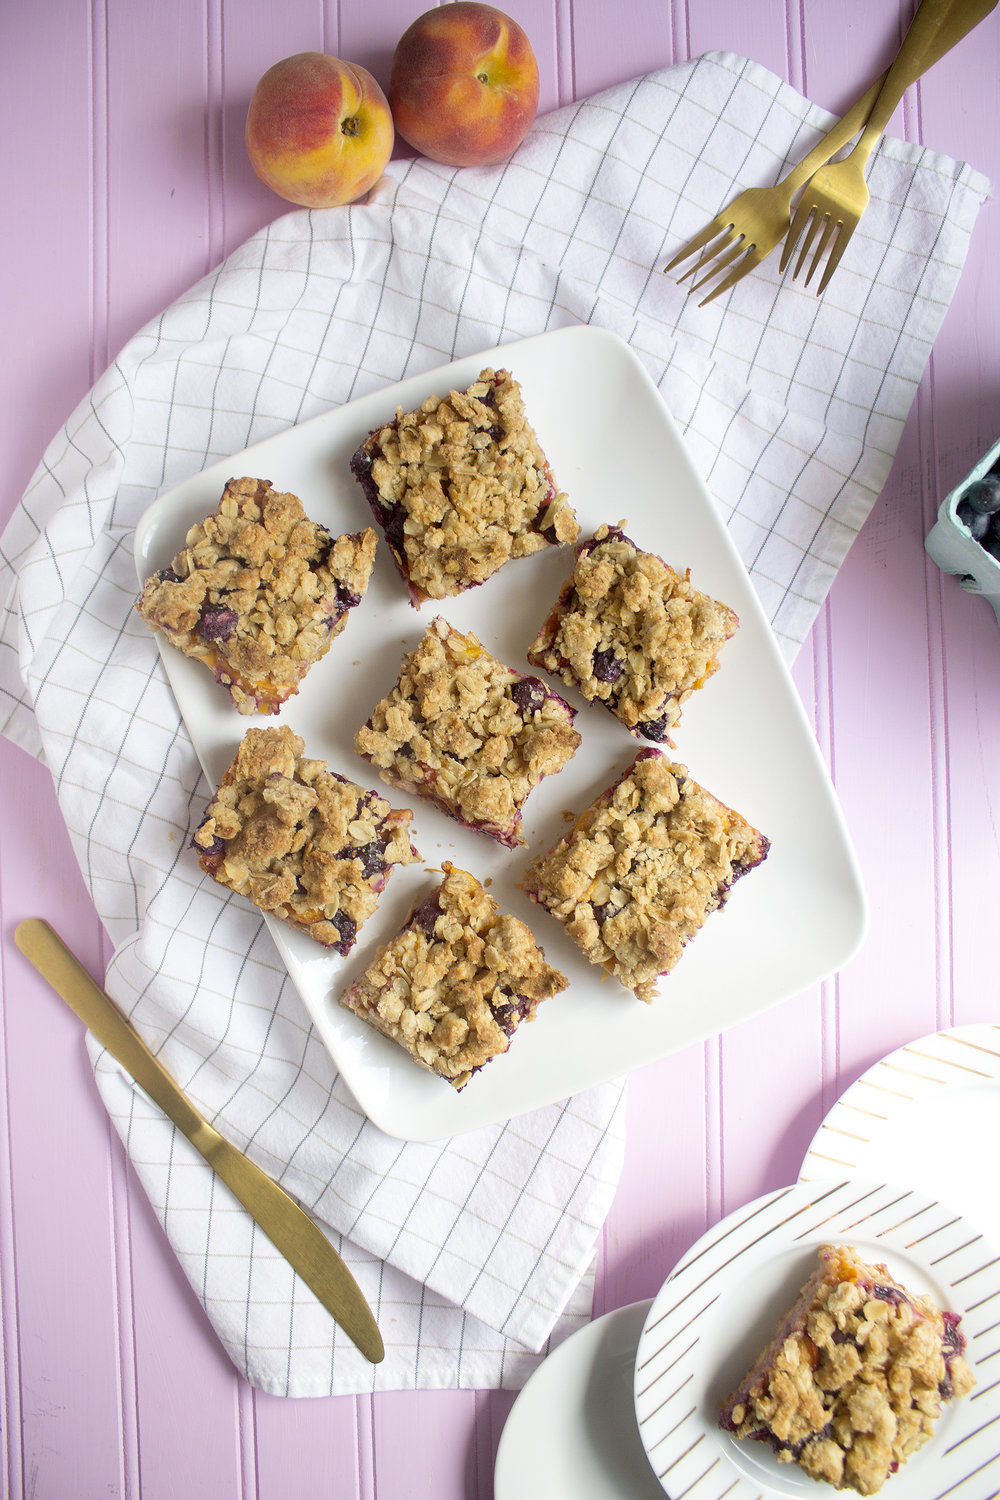 Get the recipe for these Peach Blueberry Bars via Unusuallylovely.com